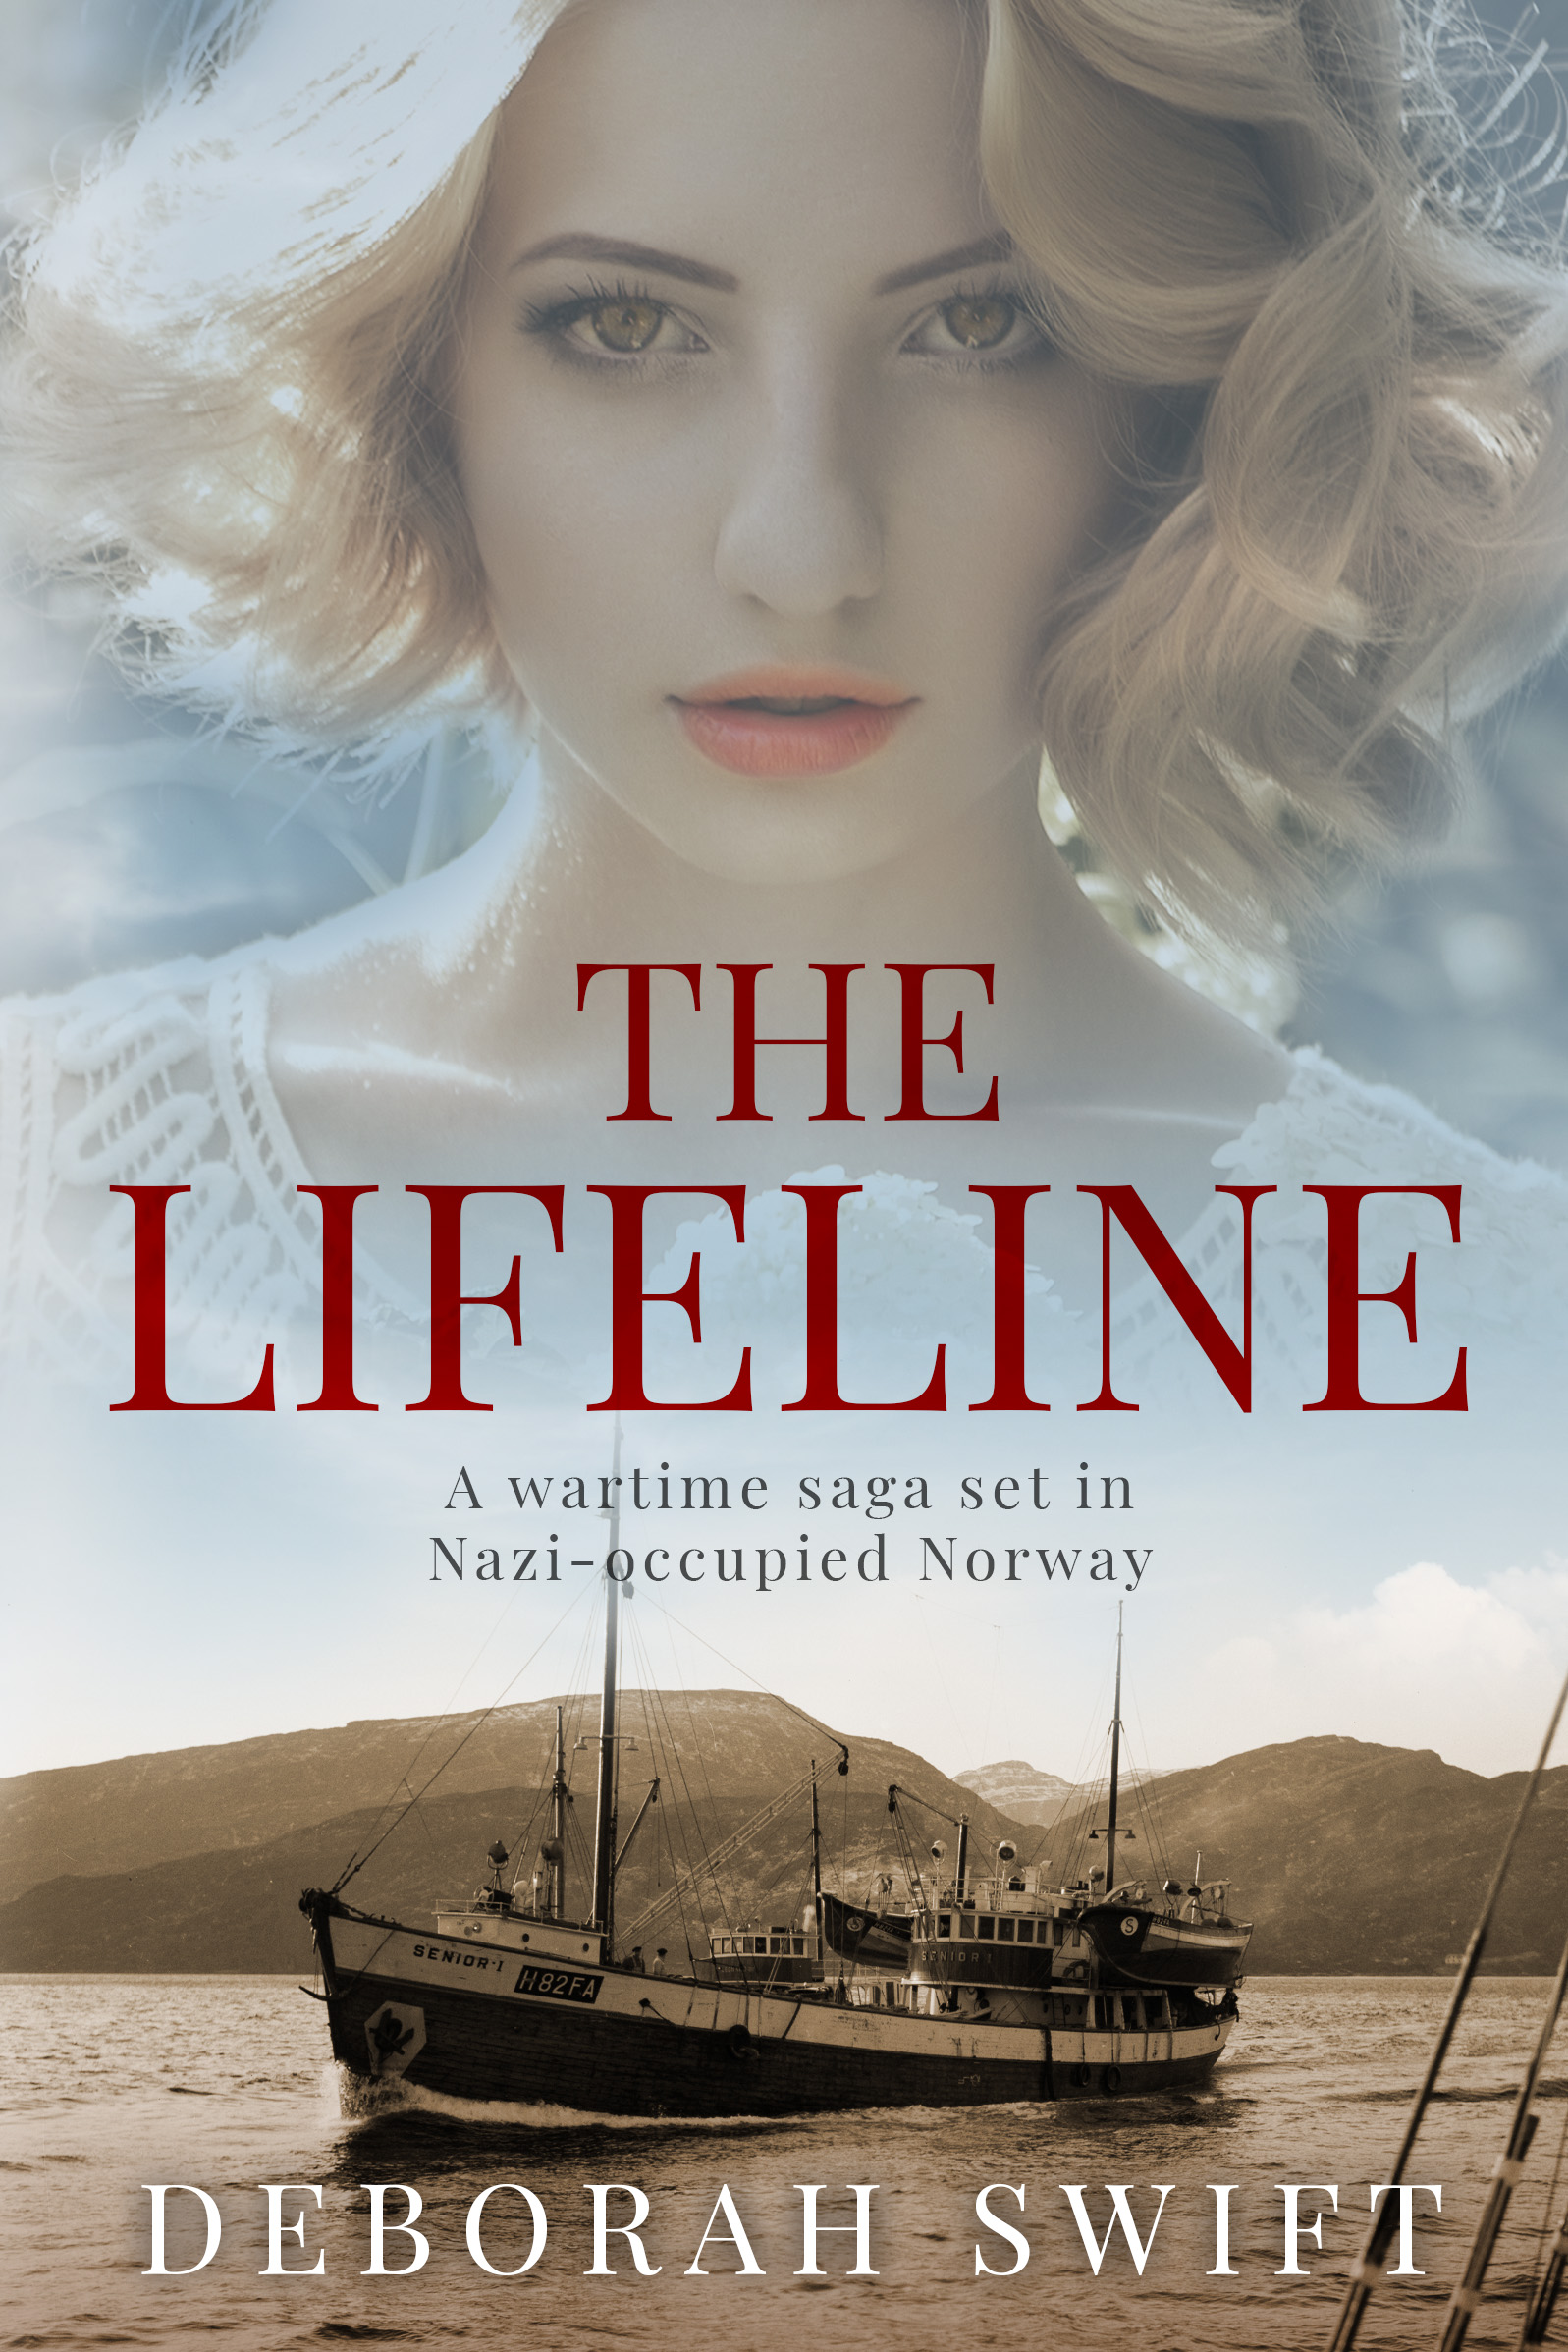 The Lifeline by Deborah Swift #WW2